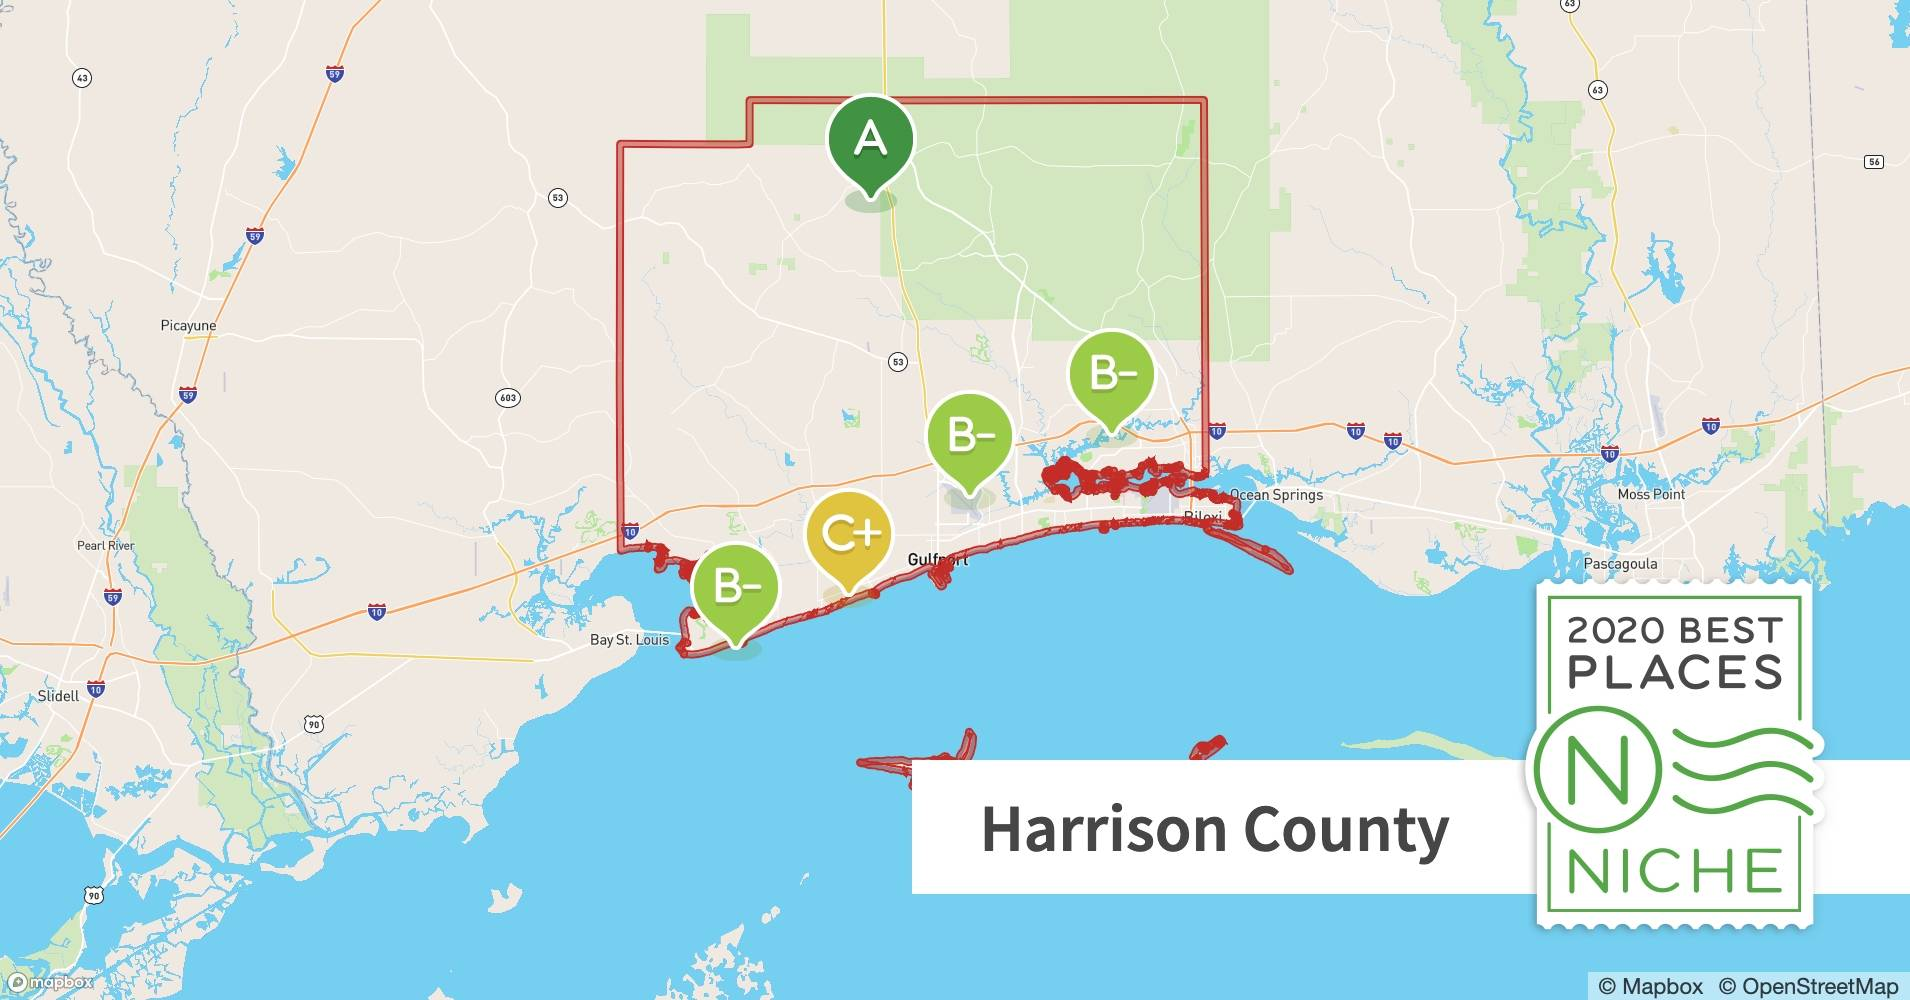 2020 Best Places To Live In Harrison County Ms Niche